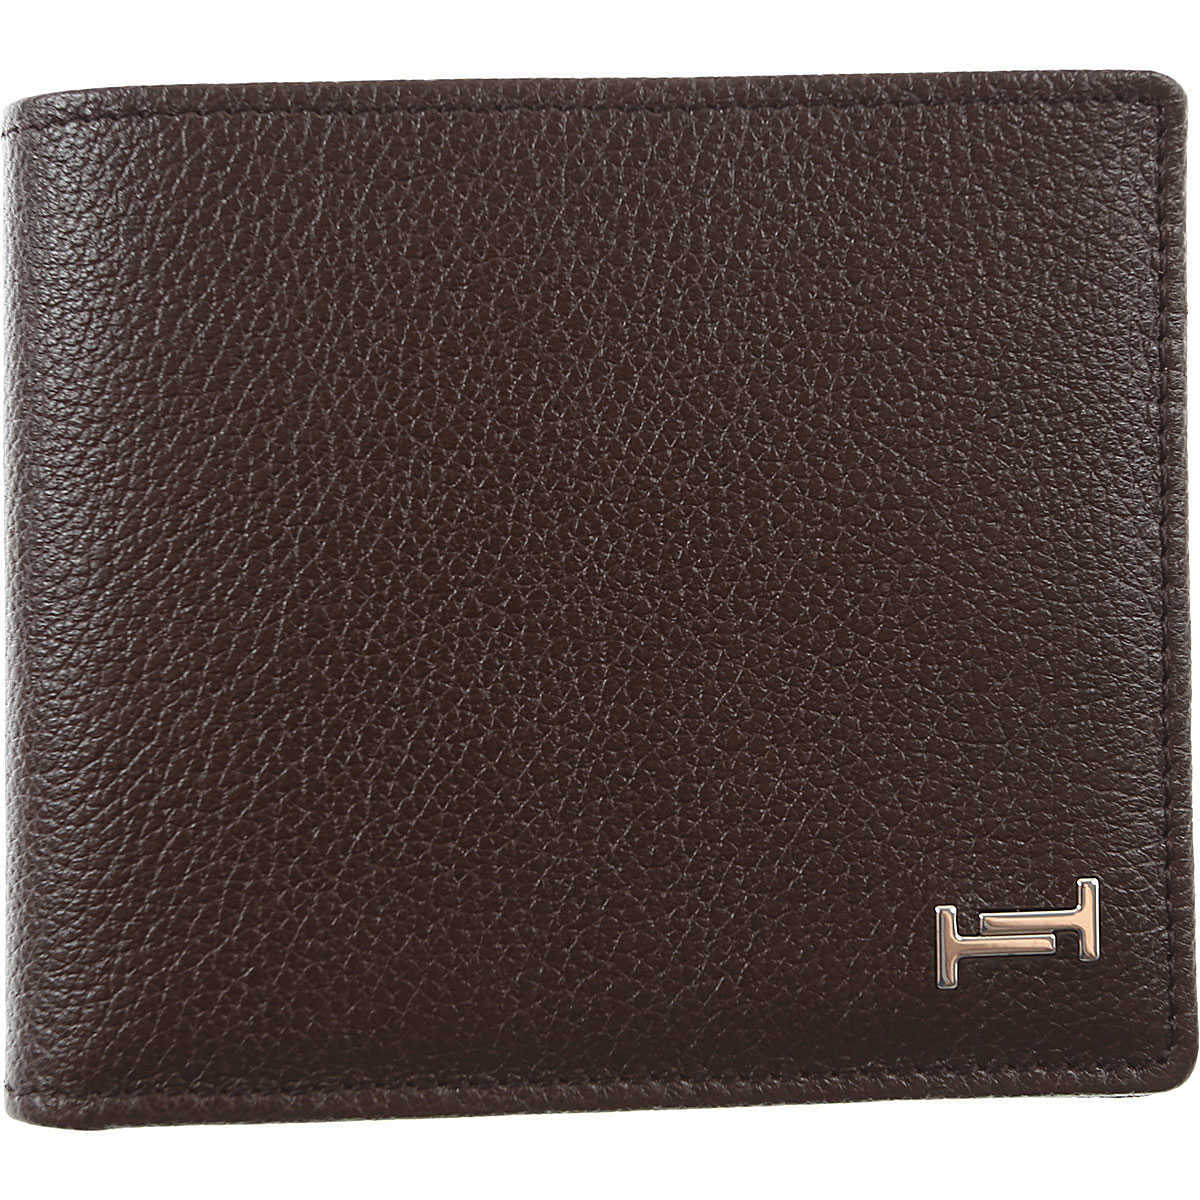 Tods Mens Wallets On Sale Brown DK - GOOFASH - Mens WALLETS